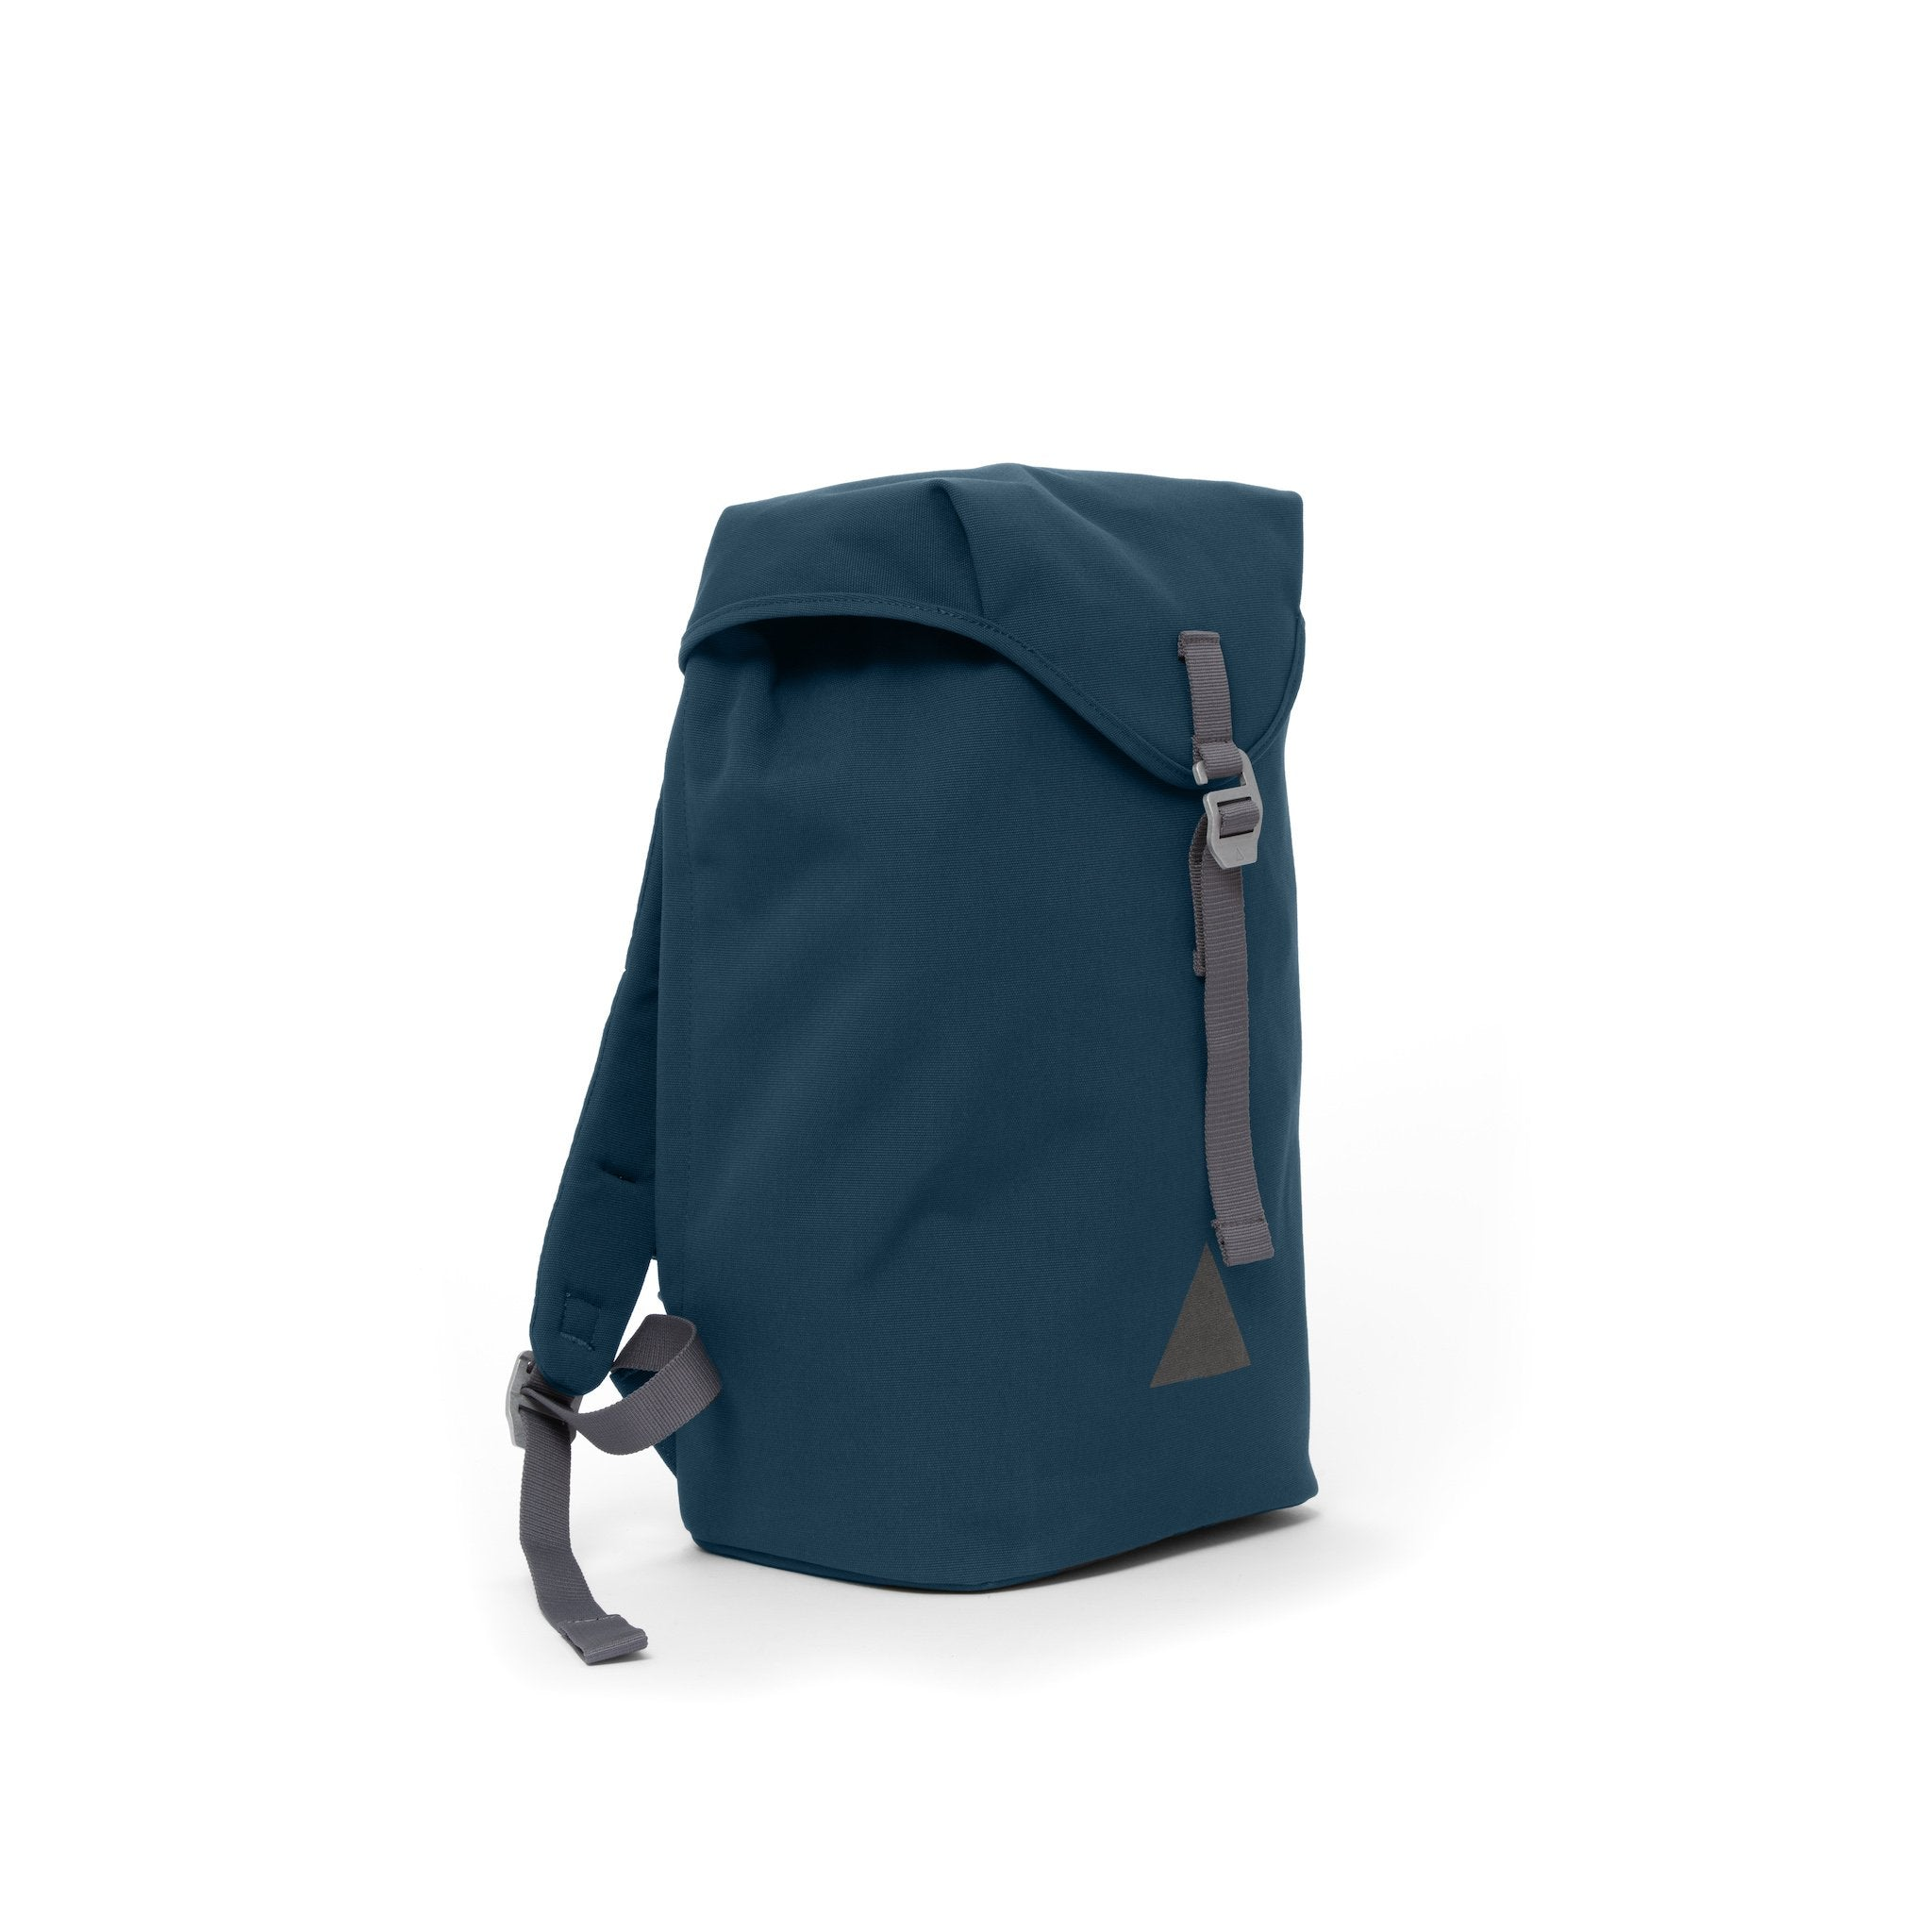 Blue recycled canvas backpack with strap closure and metal buckle.